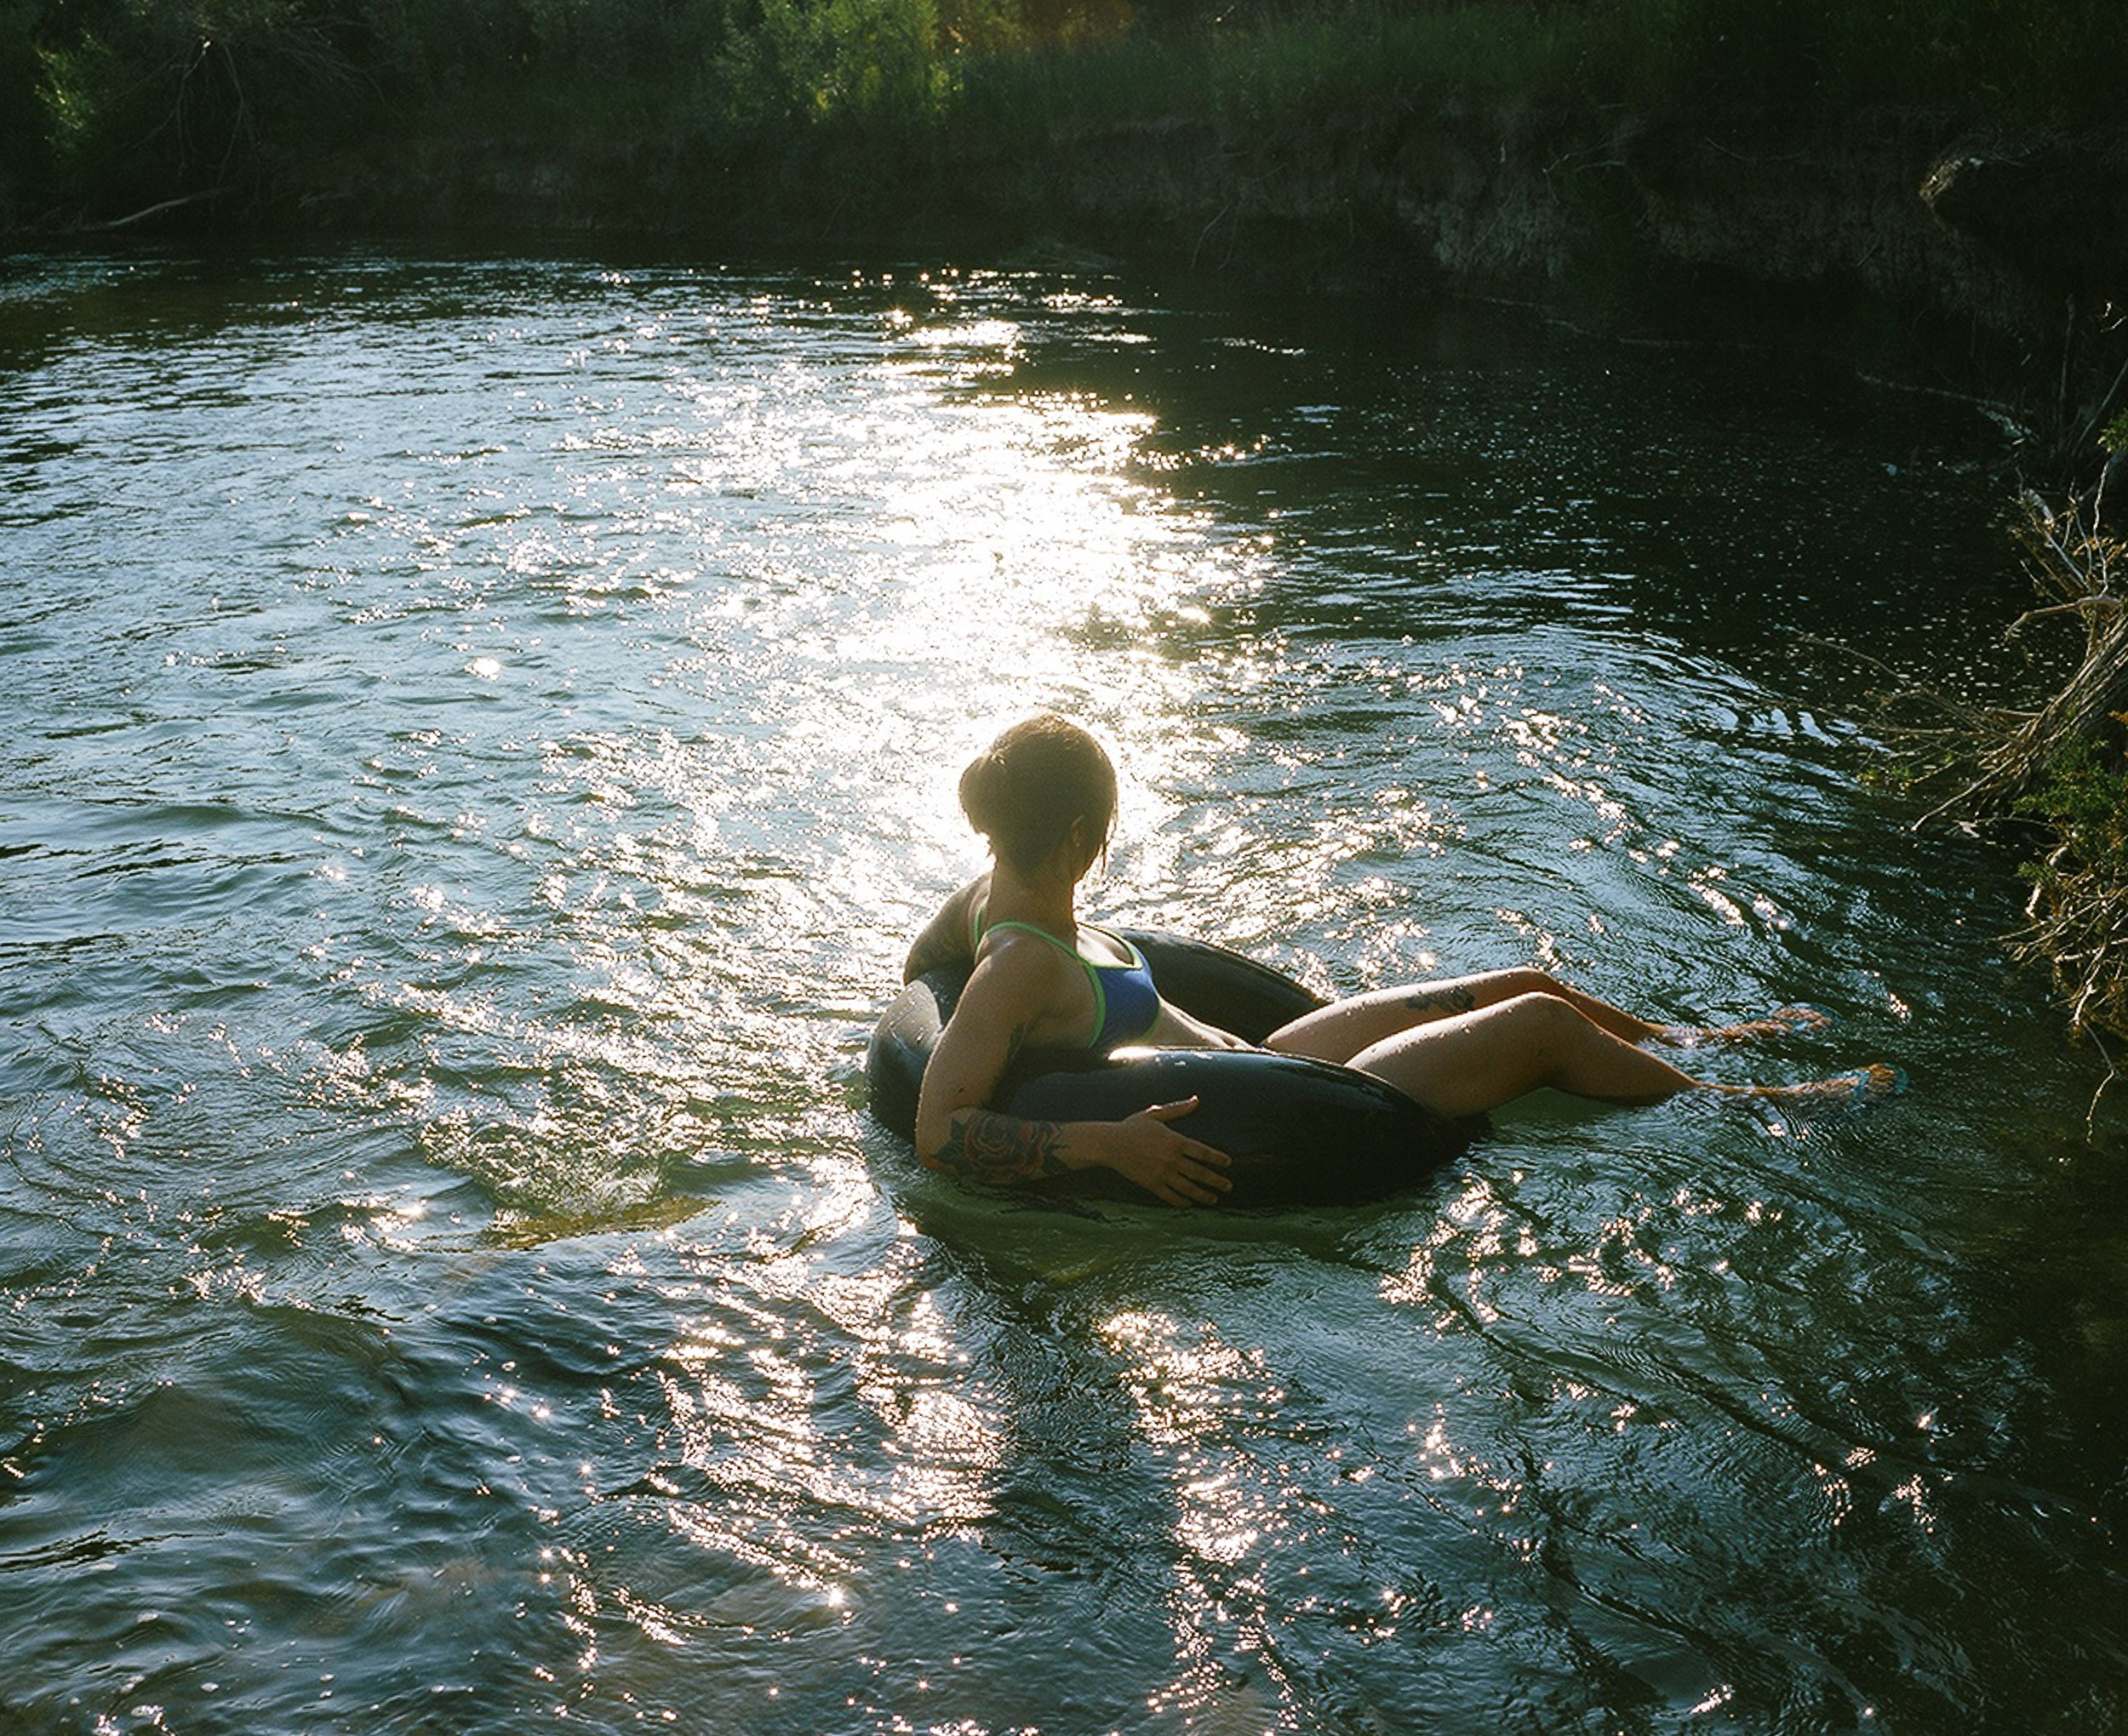 Woman floating in an innertube on a river in the glare of sunshineof